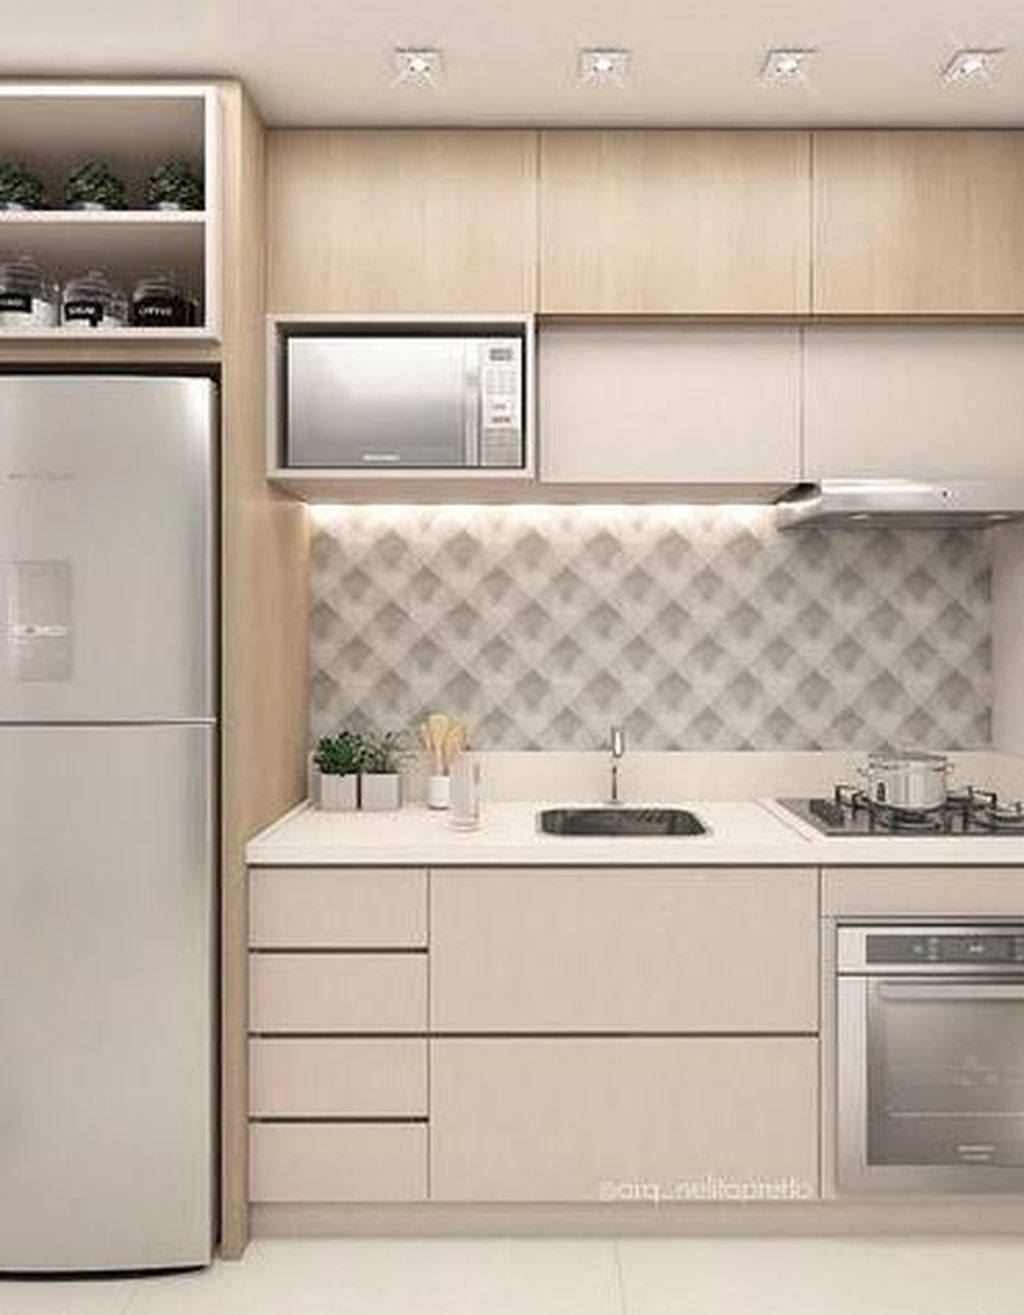 Best Tiny Kitchen Design Ideas For Your Small Space Inspiration 21